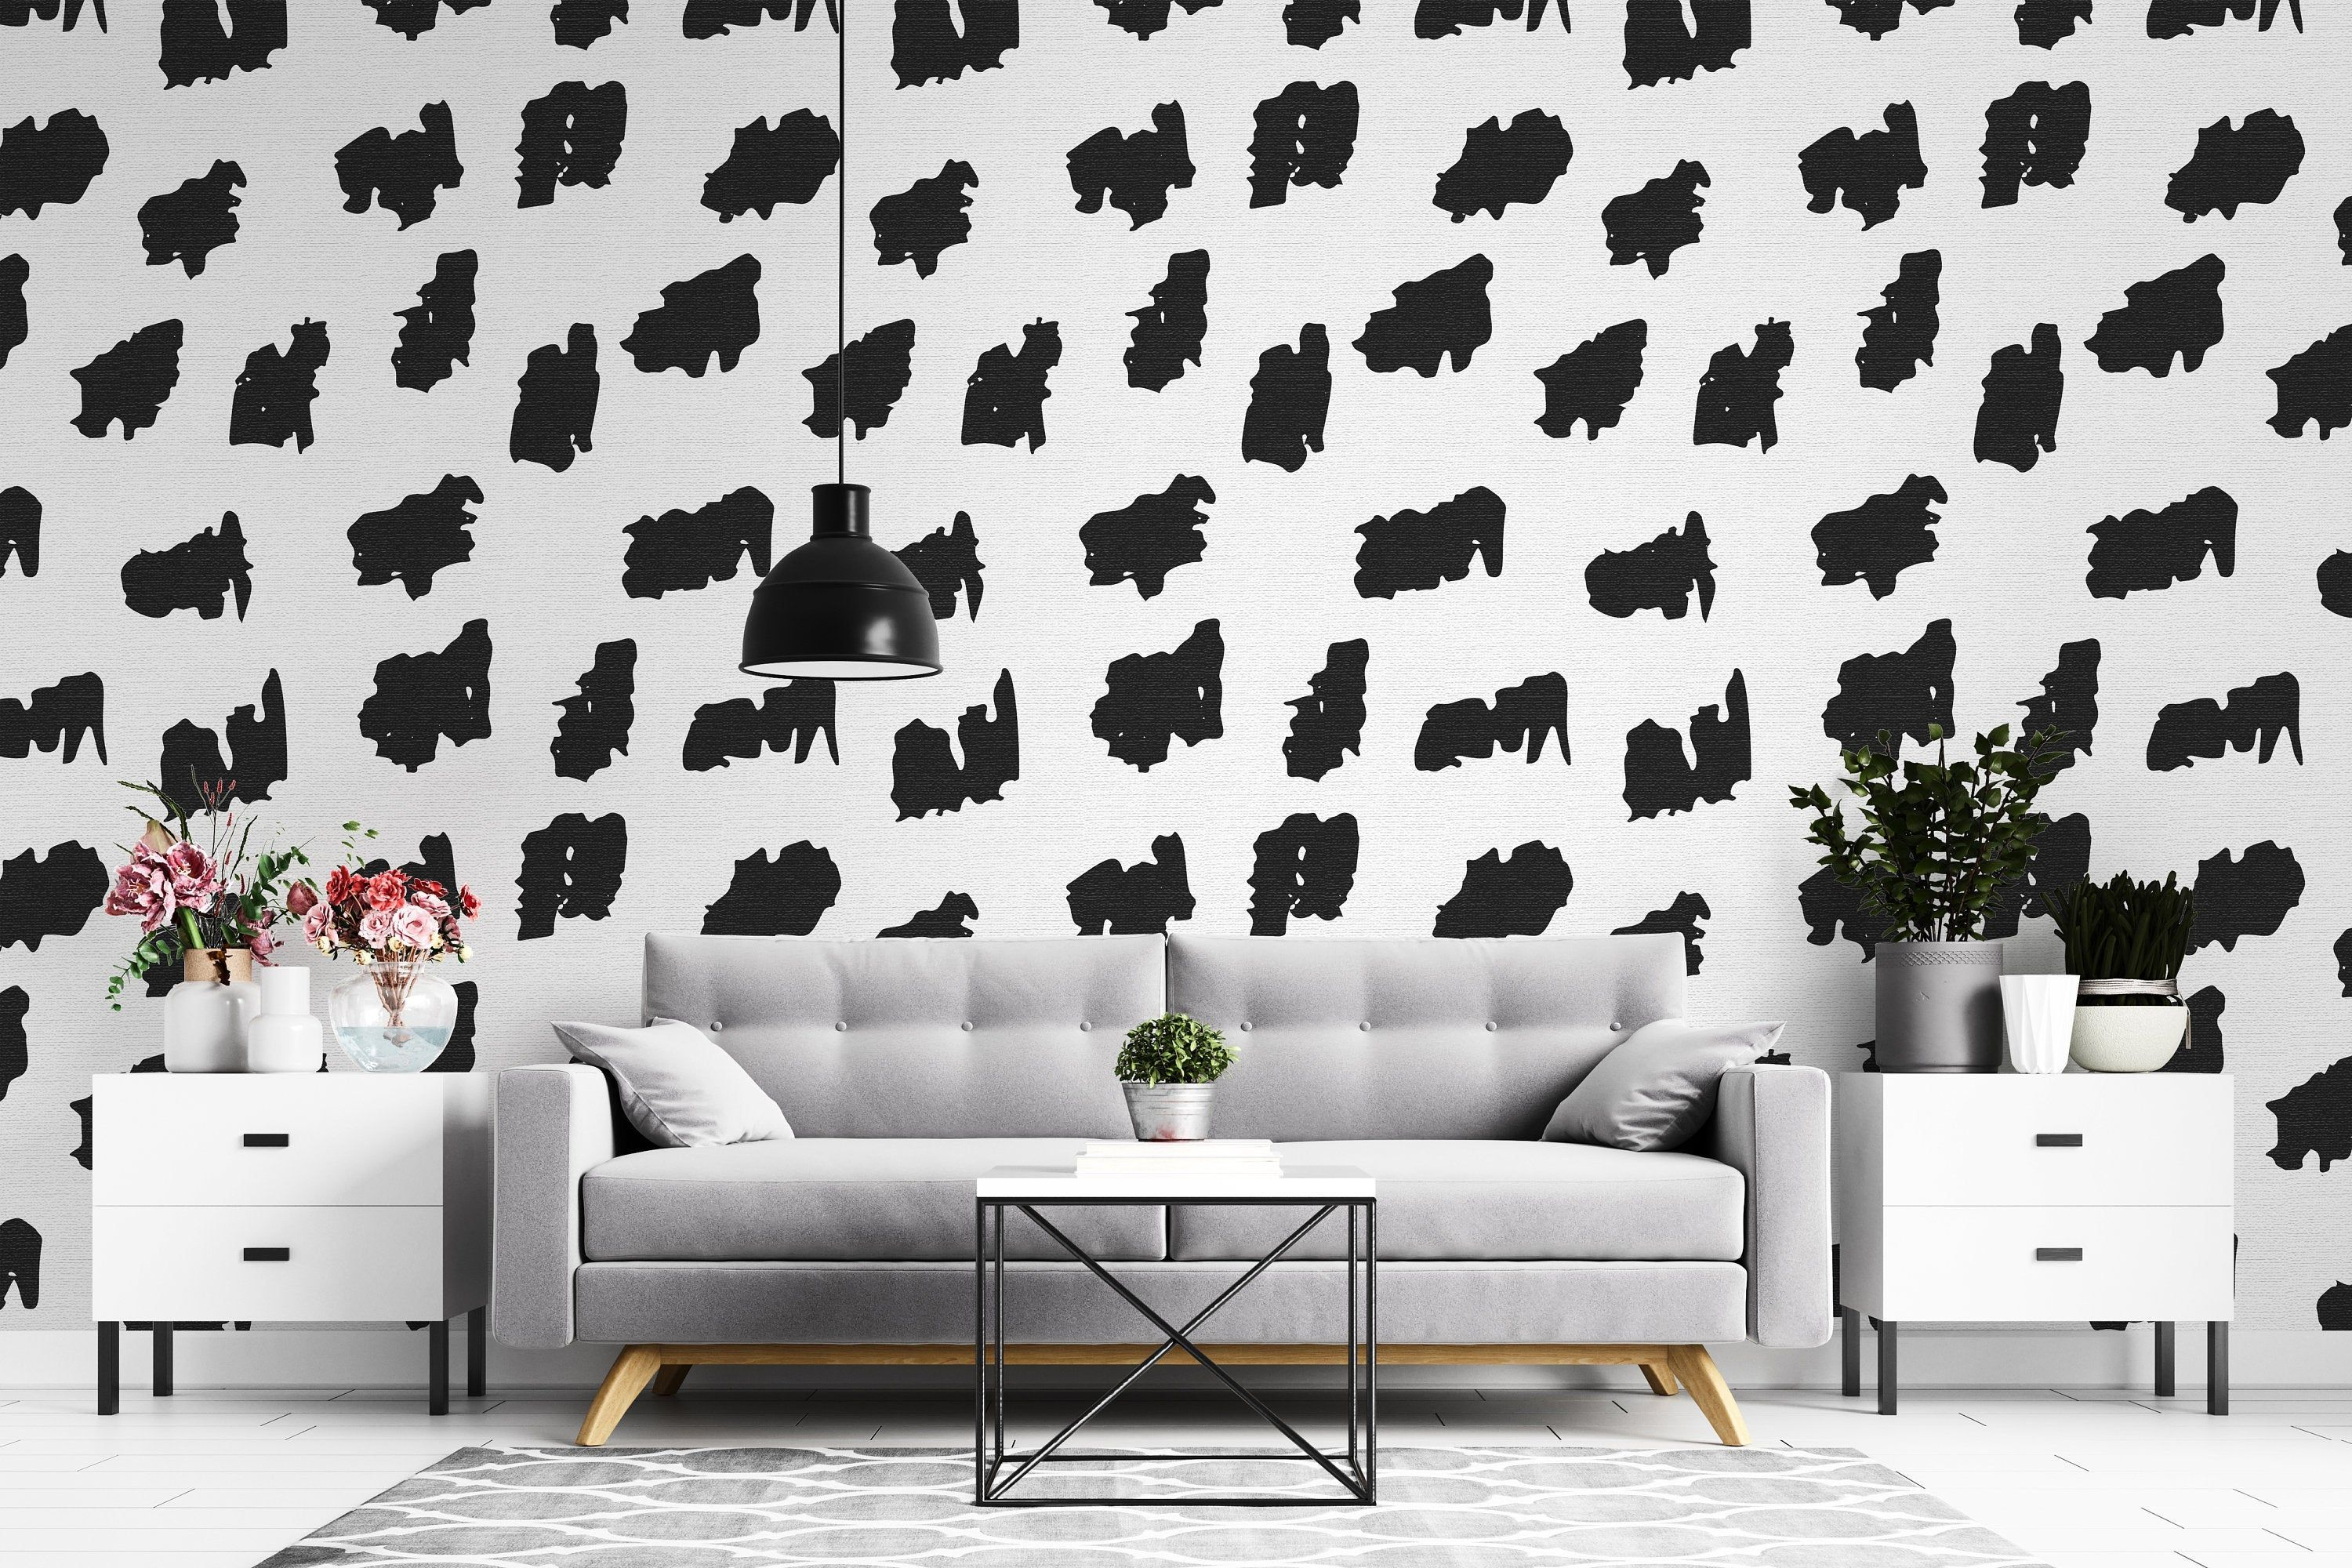 Geometric Pattern Removable Wallpaper Reusable Wall Art Peel And Stick Room Decor Self Adhesive Wall Mural Eco Friendly Removable Wallpaper Room Decor Removing Old Wallpaper